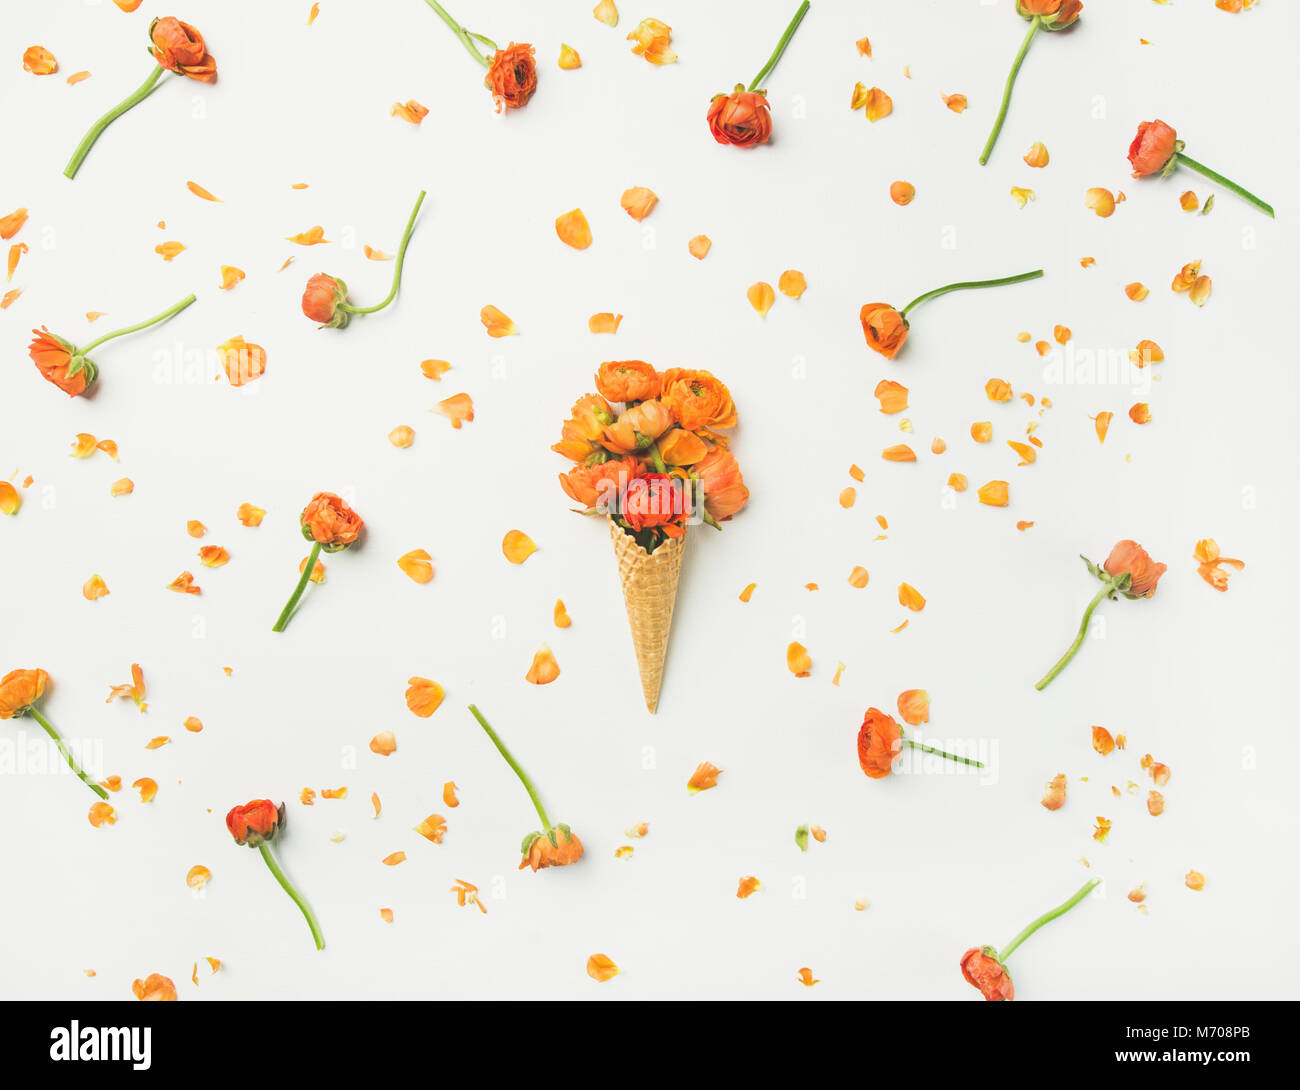 Waffle cone with orange buttercup flowers - Stock Image